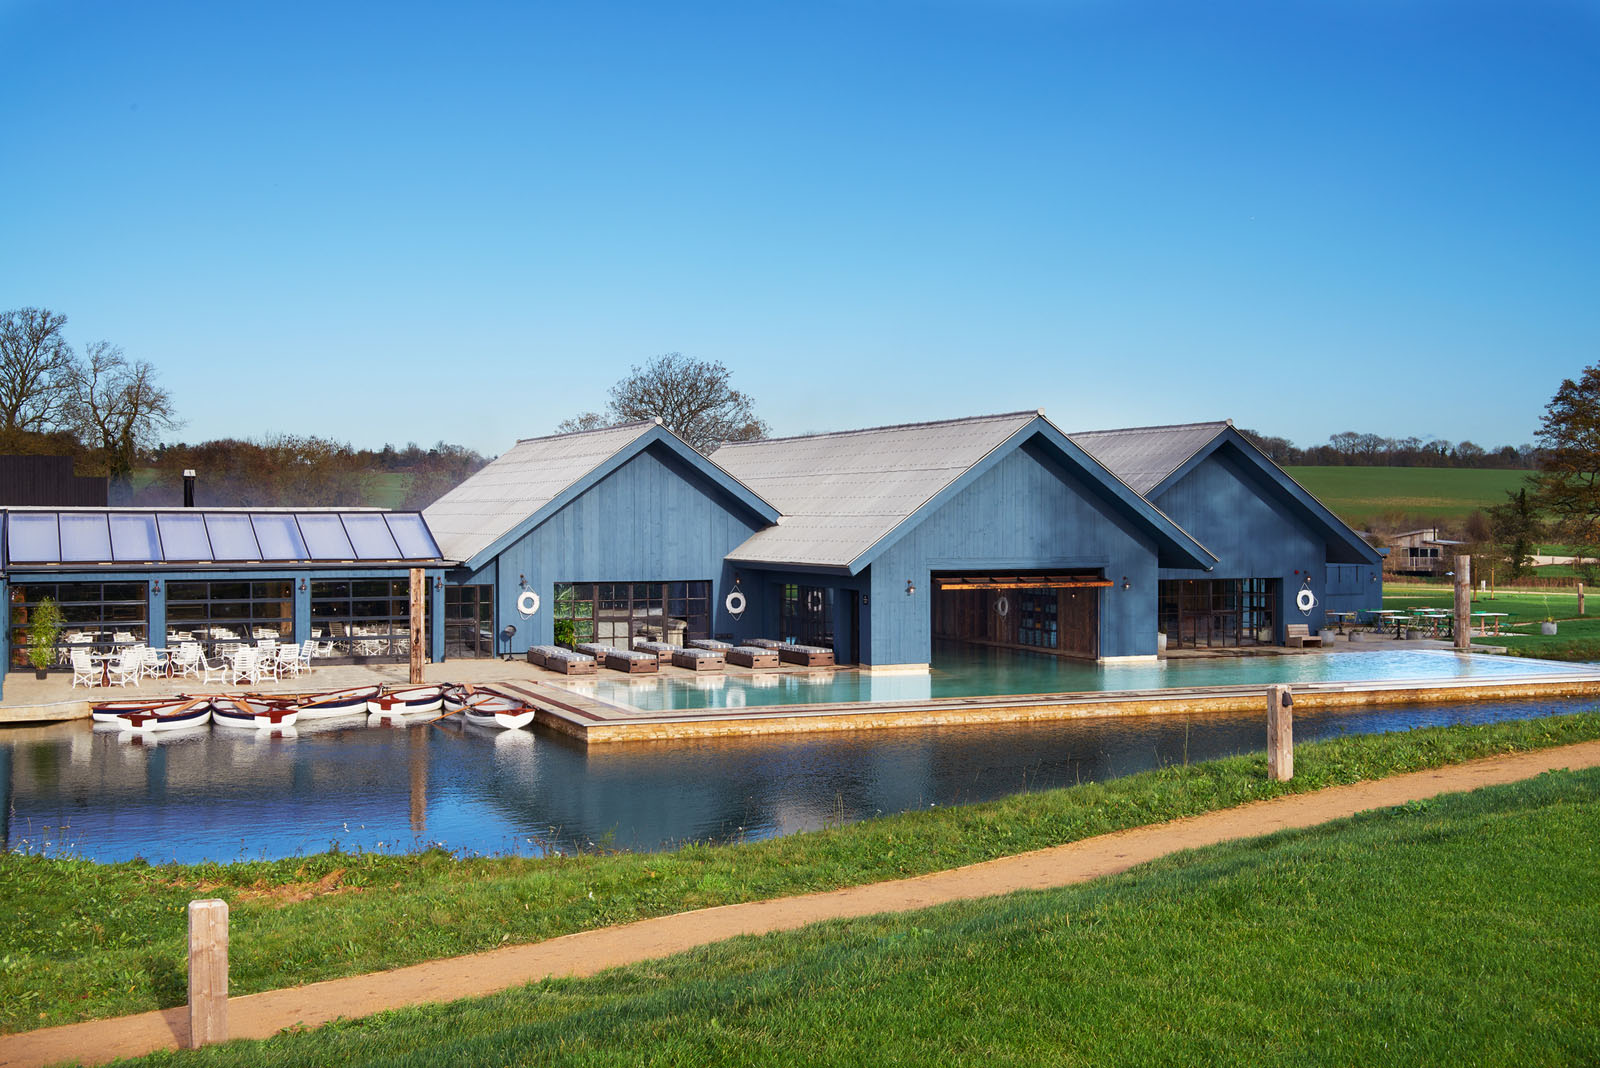 soho farmhouse oxfordshire: an exclusive retreat in the english